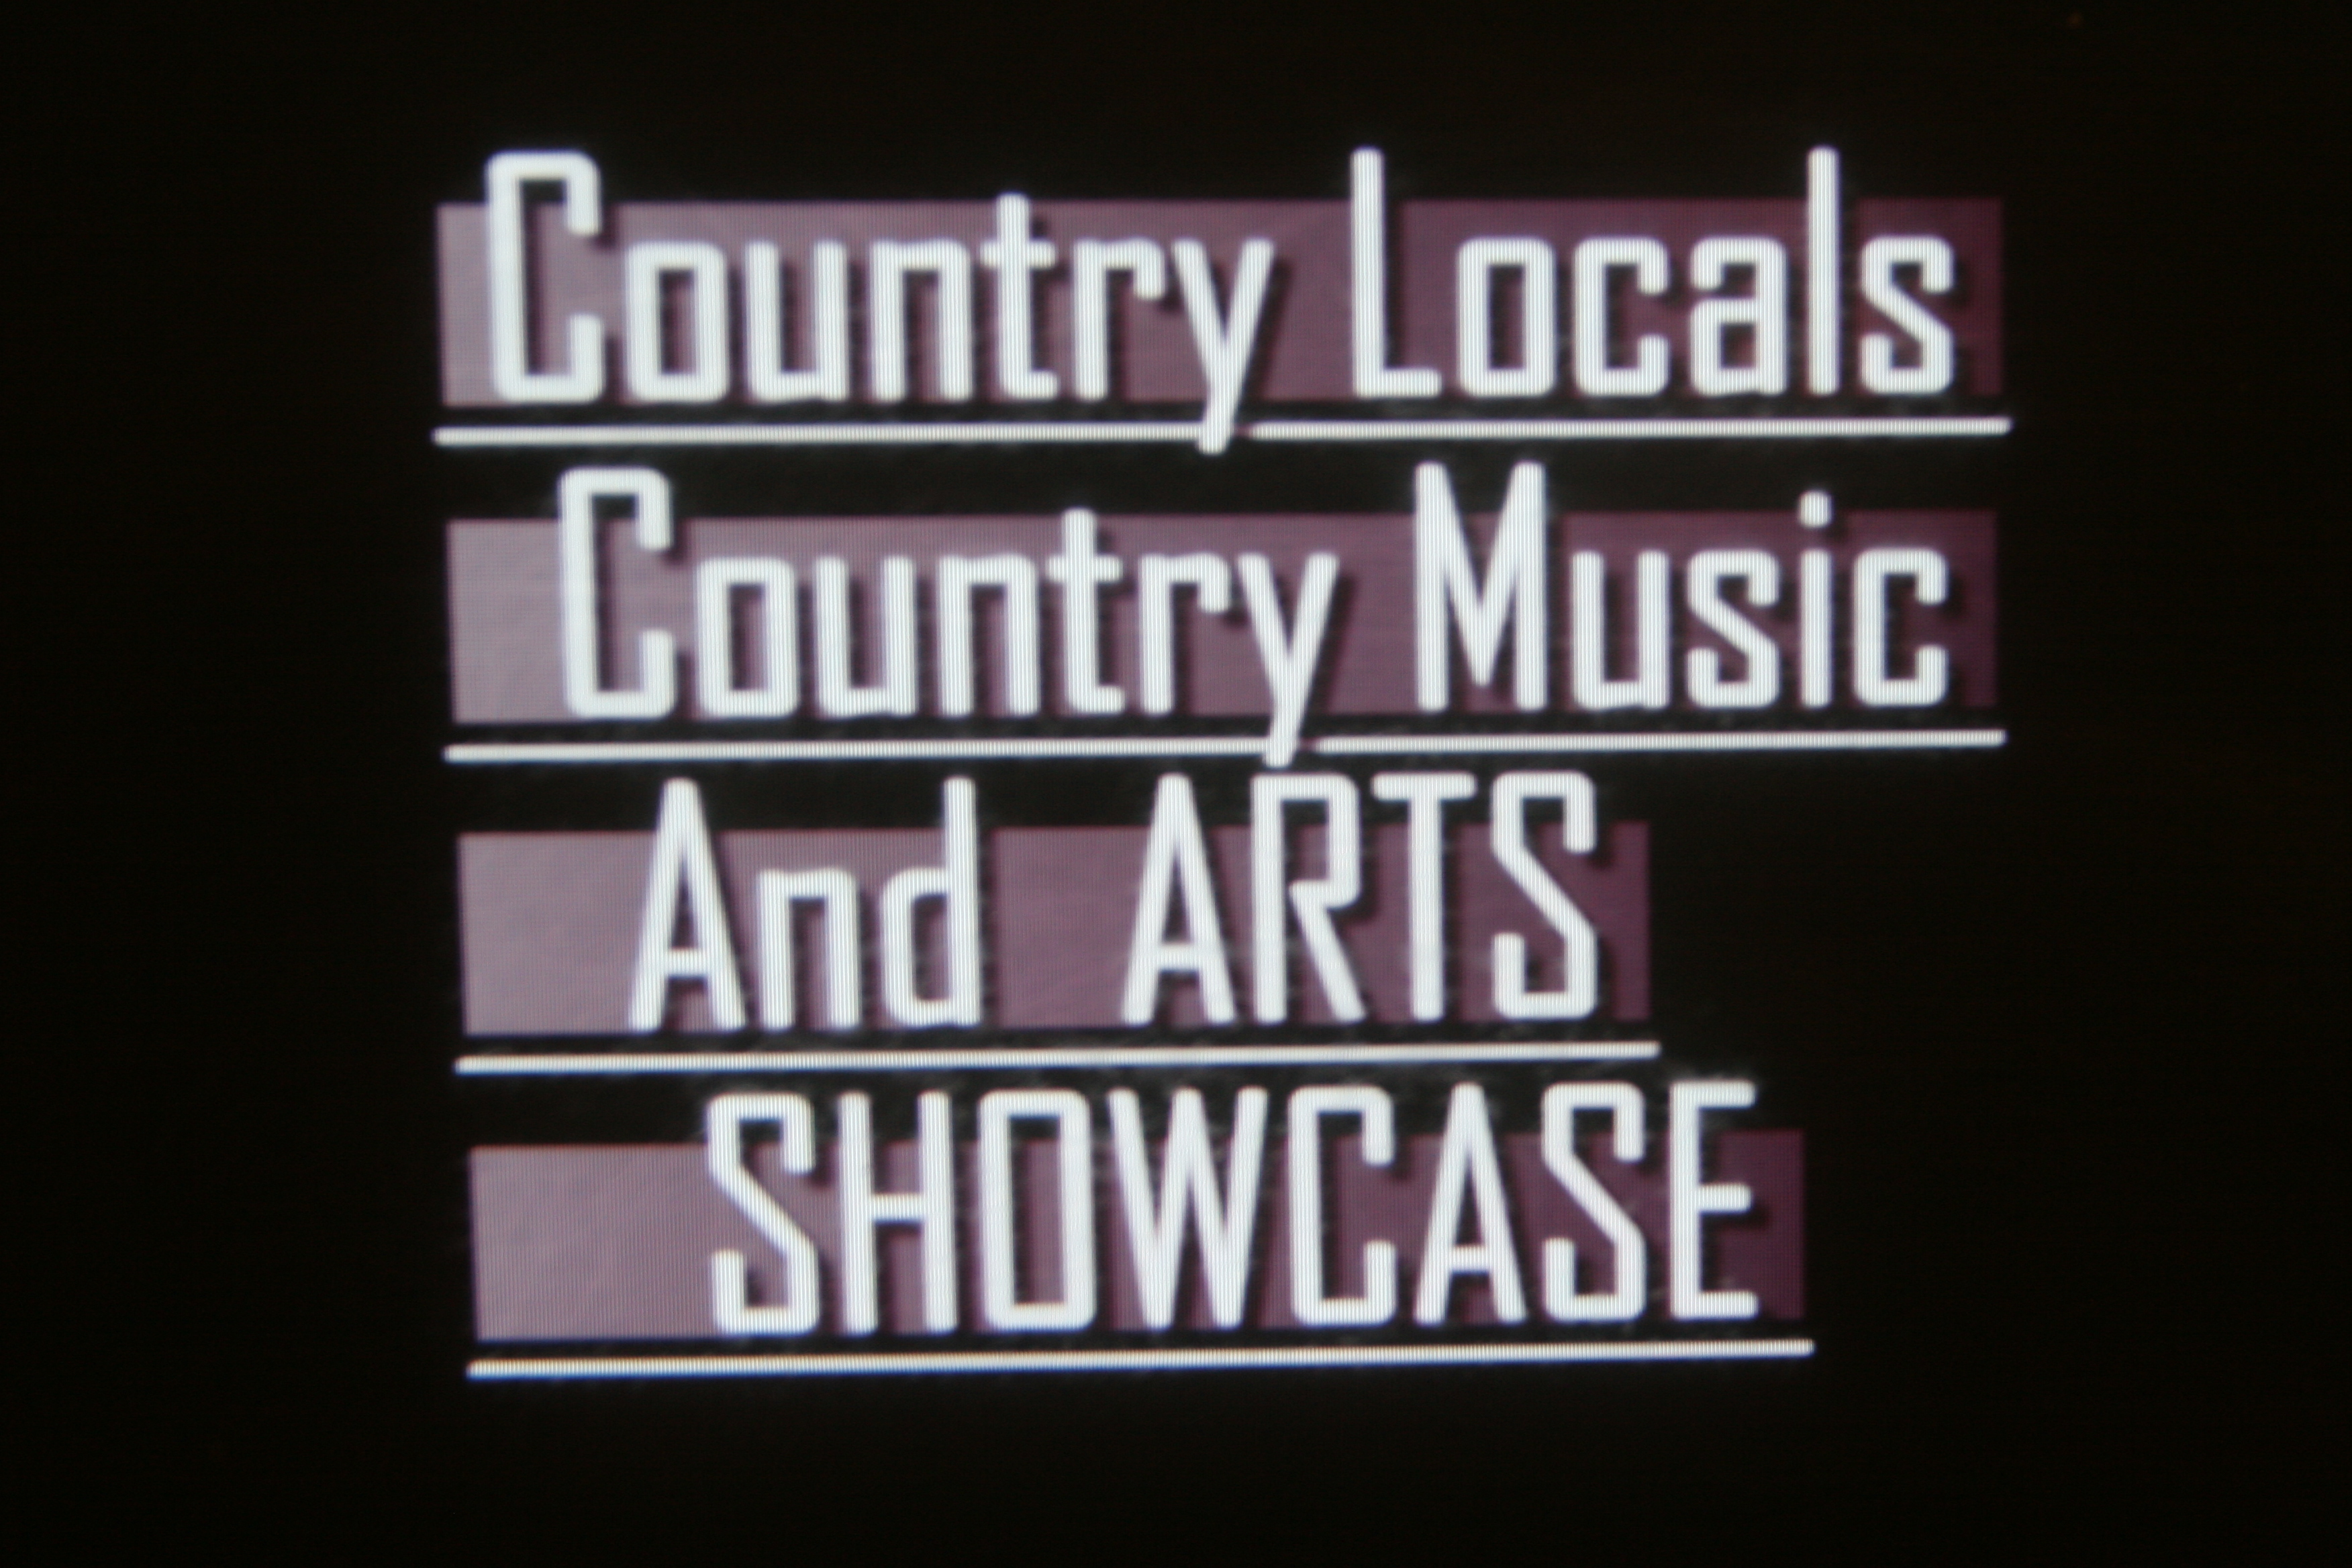 Country Locals:Music